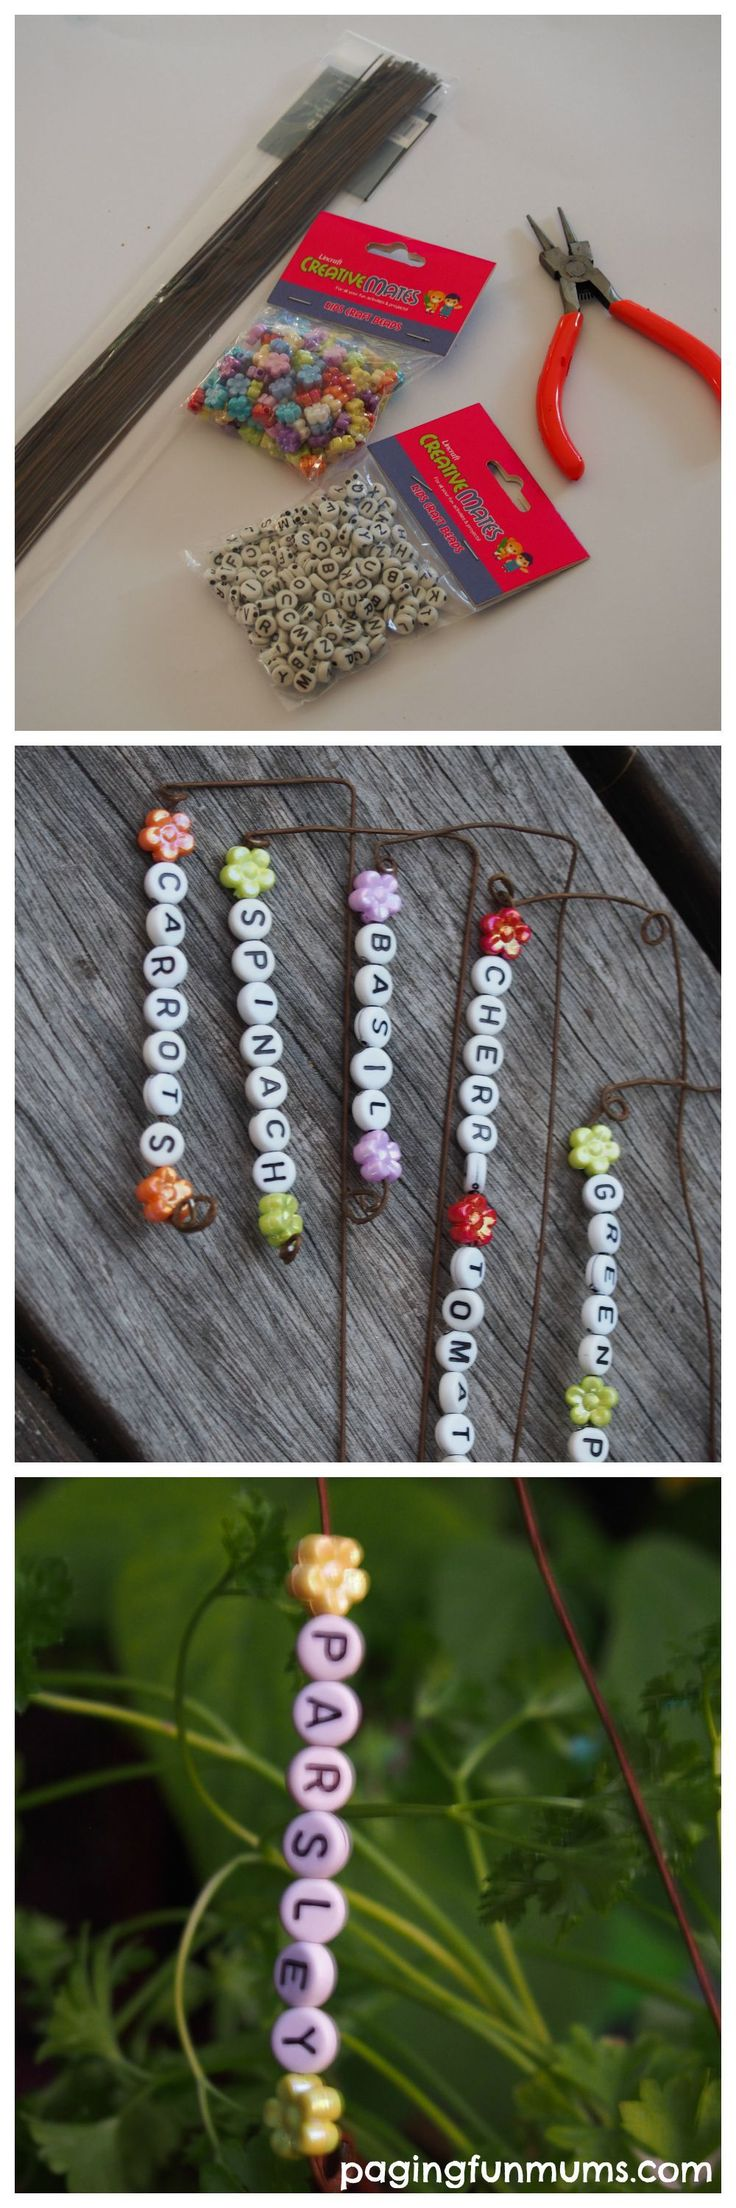 English garden plant labels - Beaded Garden Markers Fun Gardening Project For Kids